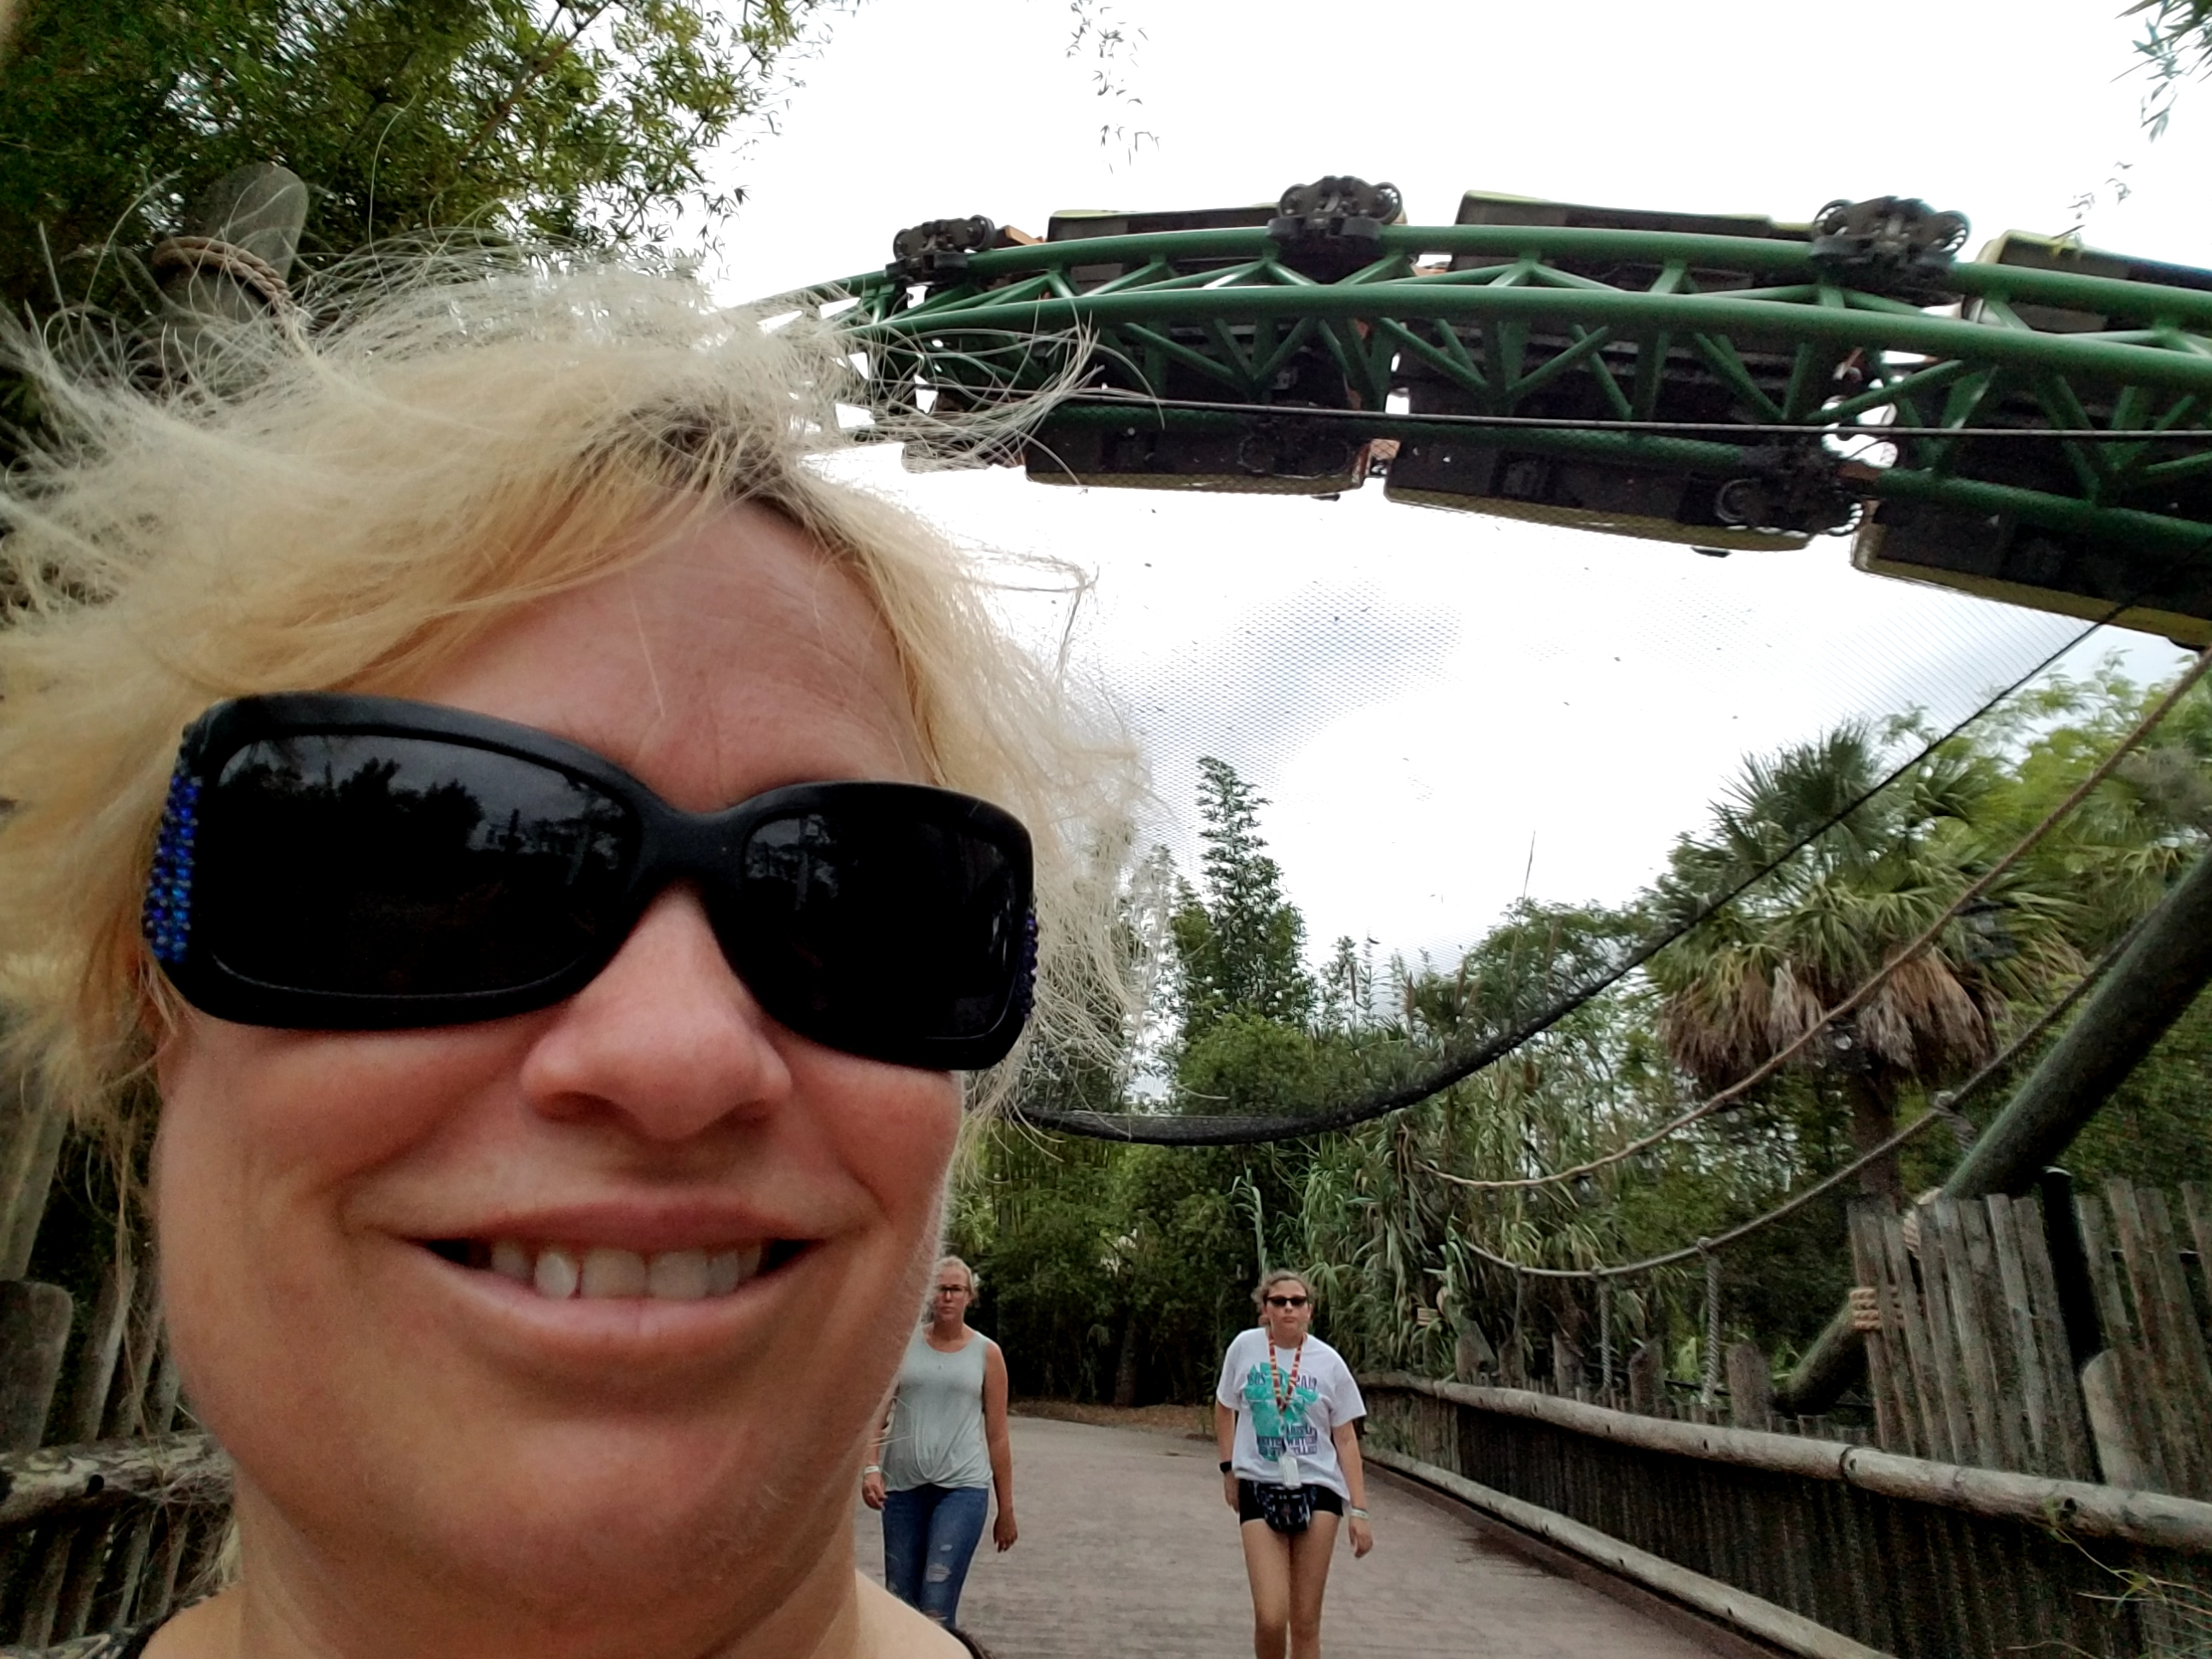 Busch Gardens For The Odd Man Out Attractiontickets Com